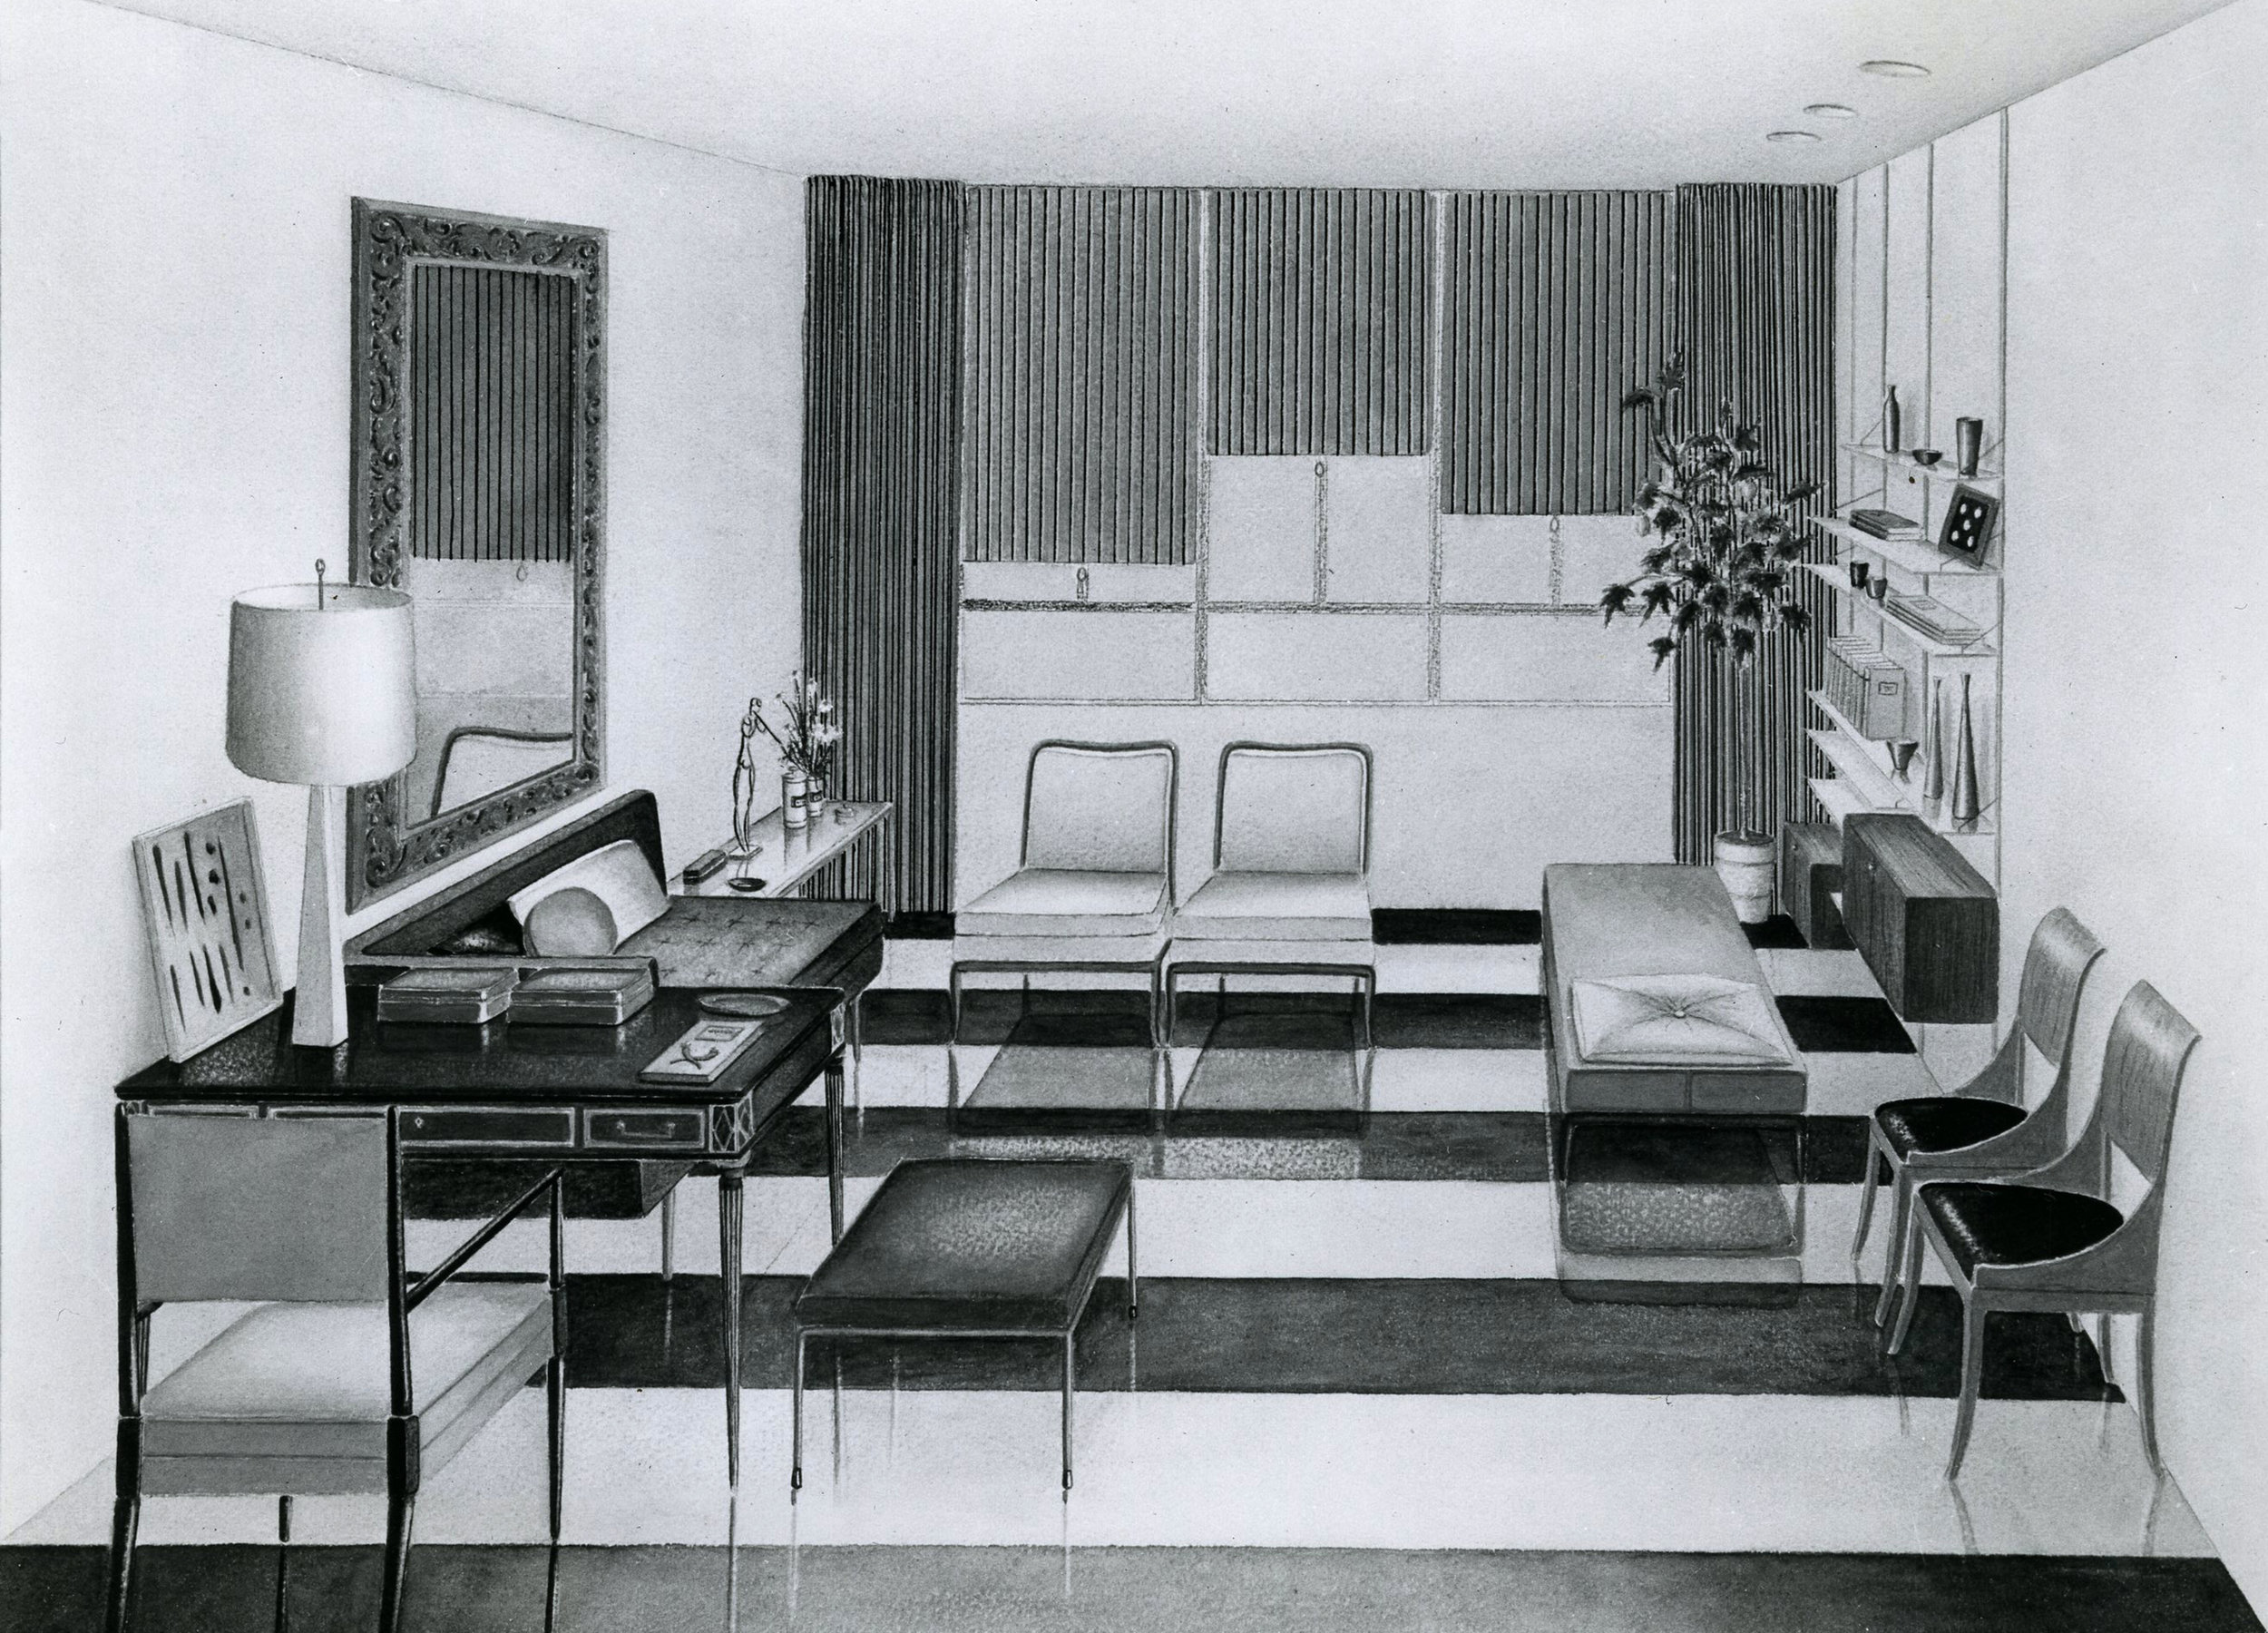 student-drawings-of-a-one-room-house-from-the-1950s_23858082254_o.jpg